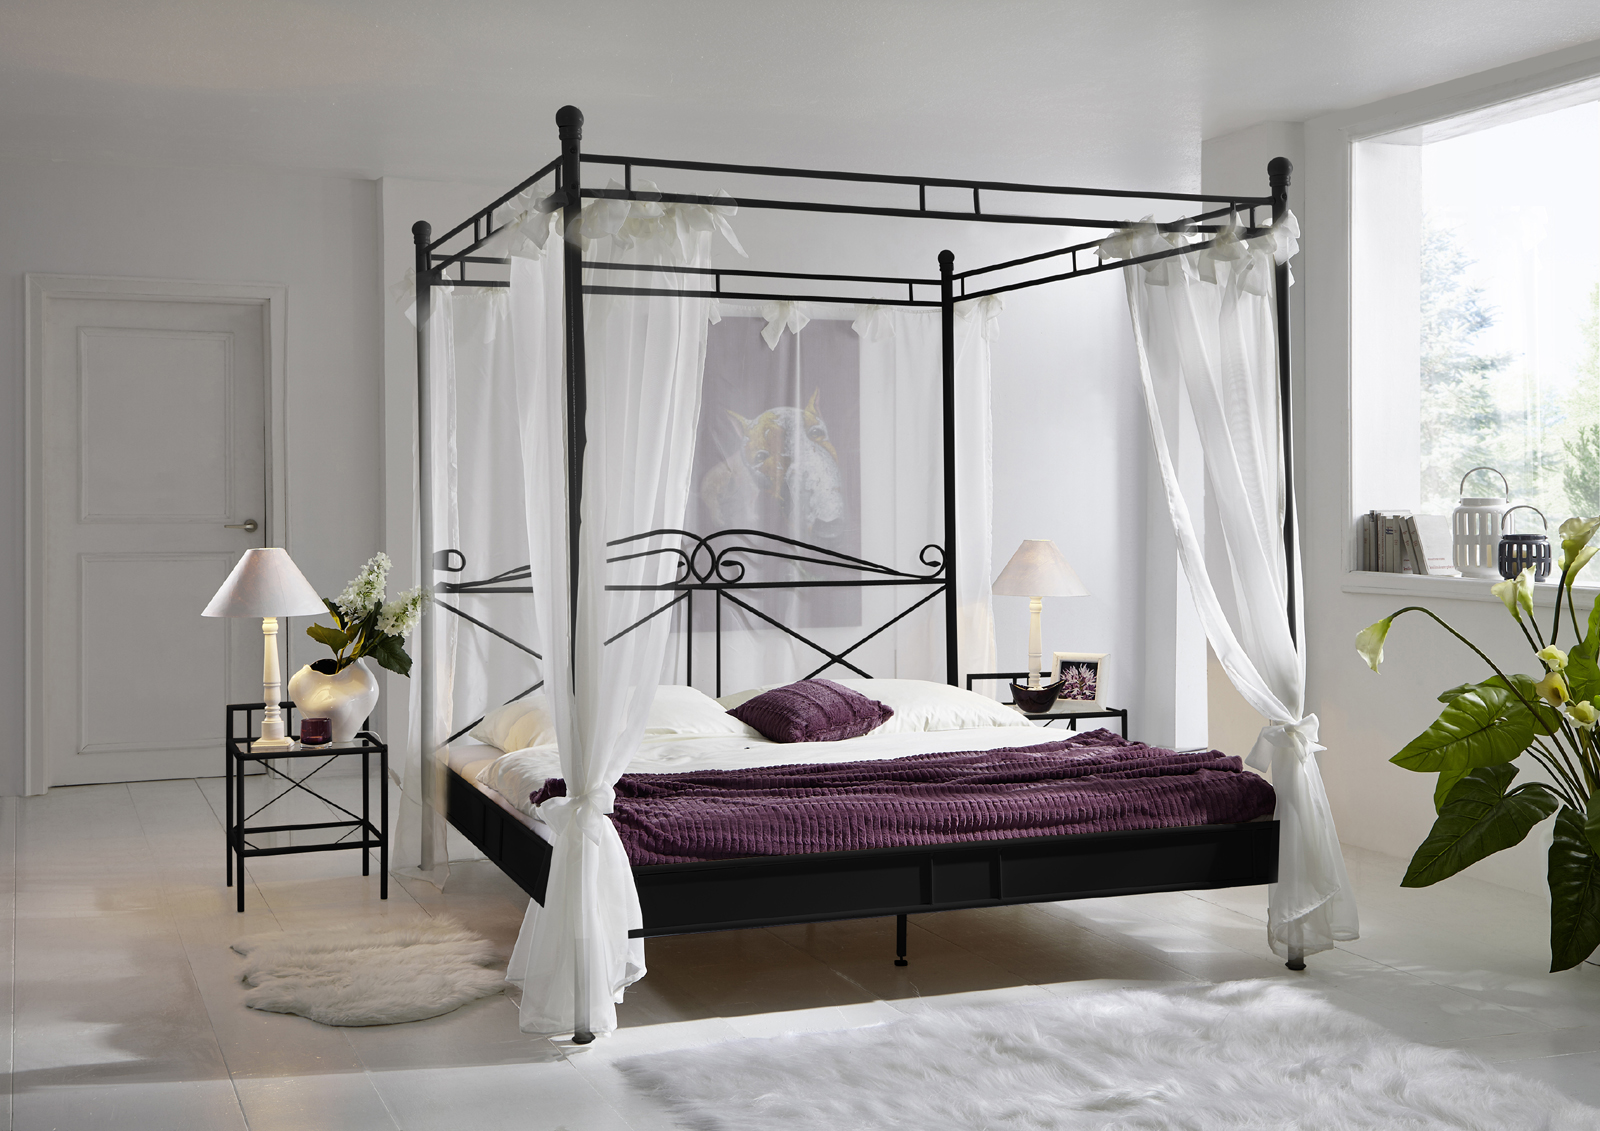 sam himmelbett doppelbett 180 x 200 cm schwarz venezia demn chst. Black Bedroom Furniture Sets. Home Design Ideas